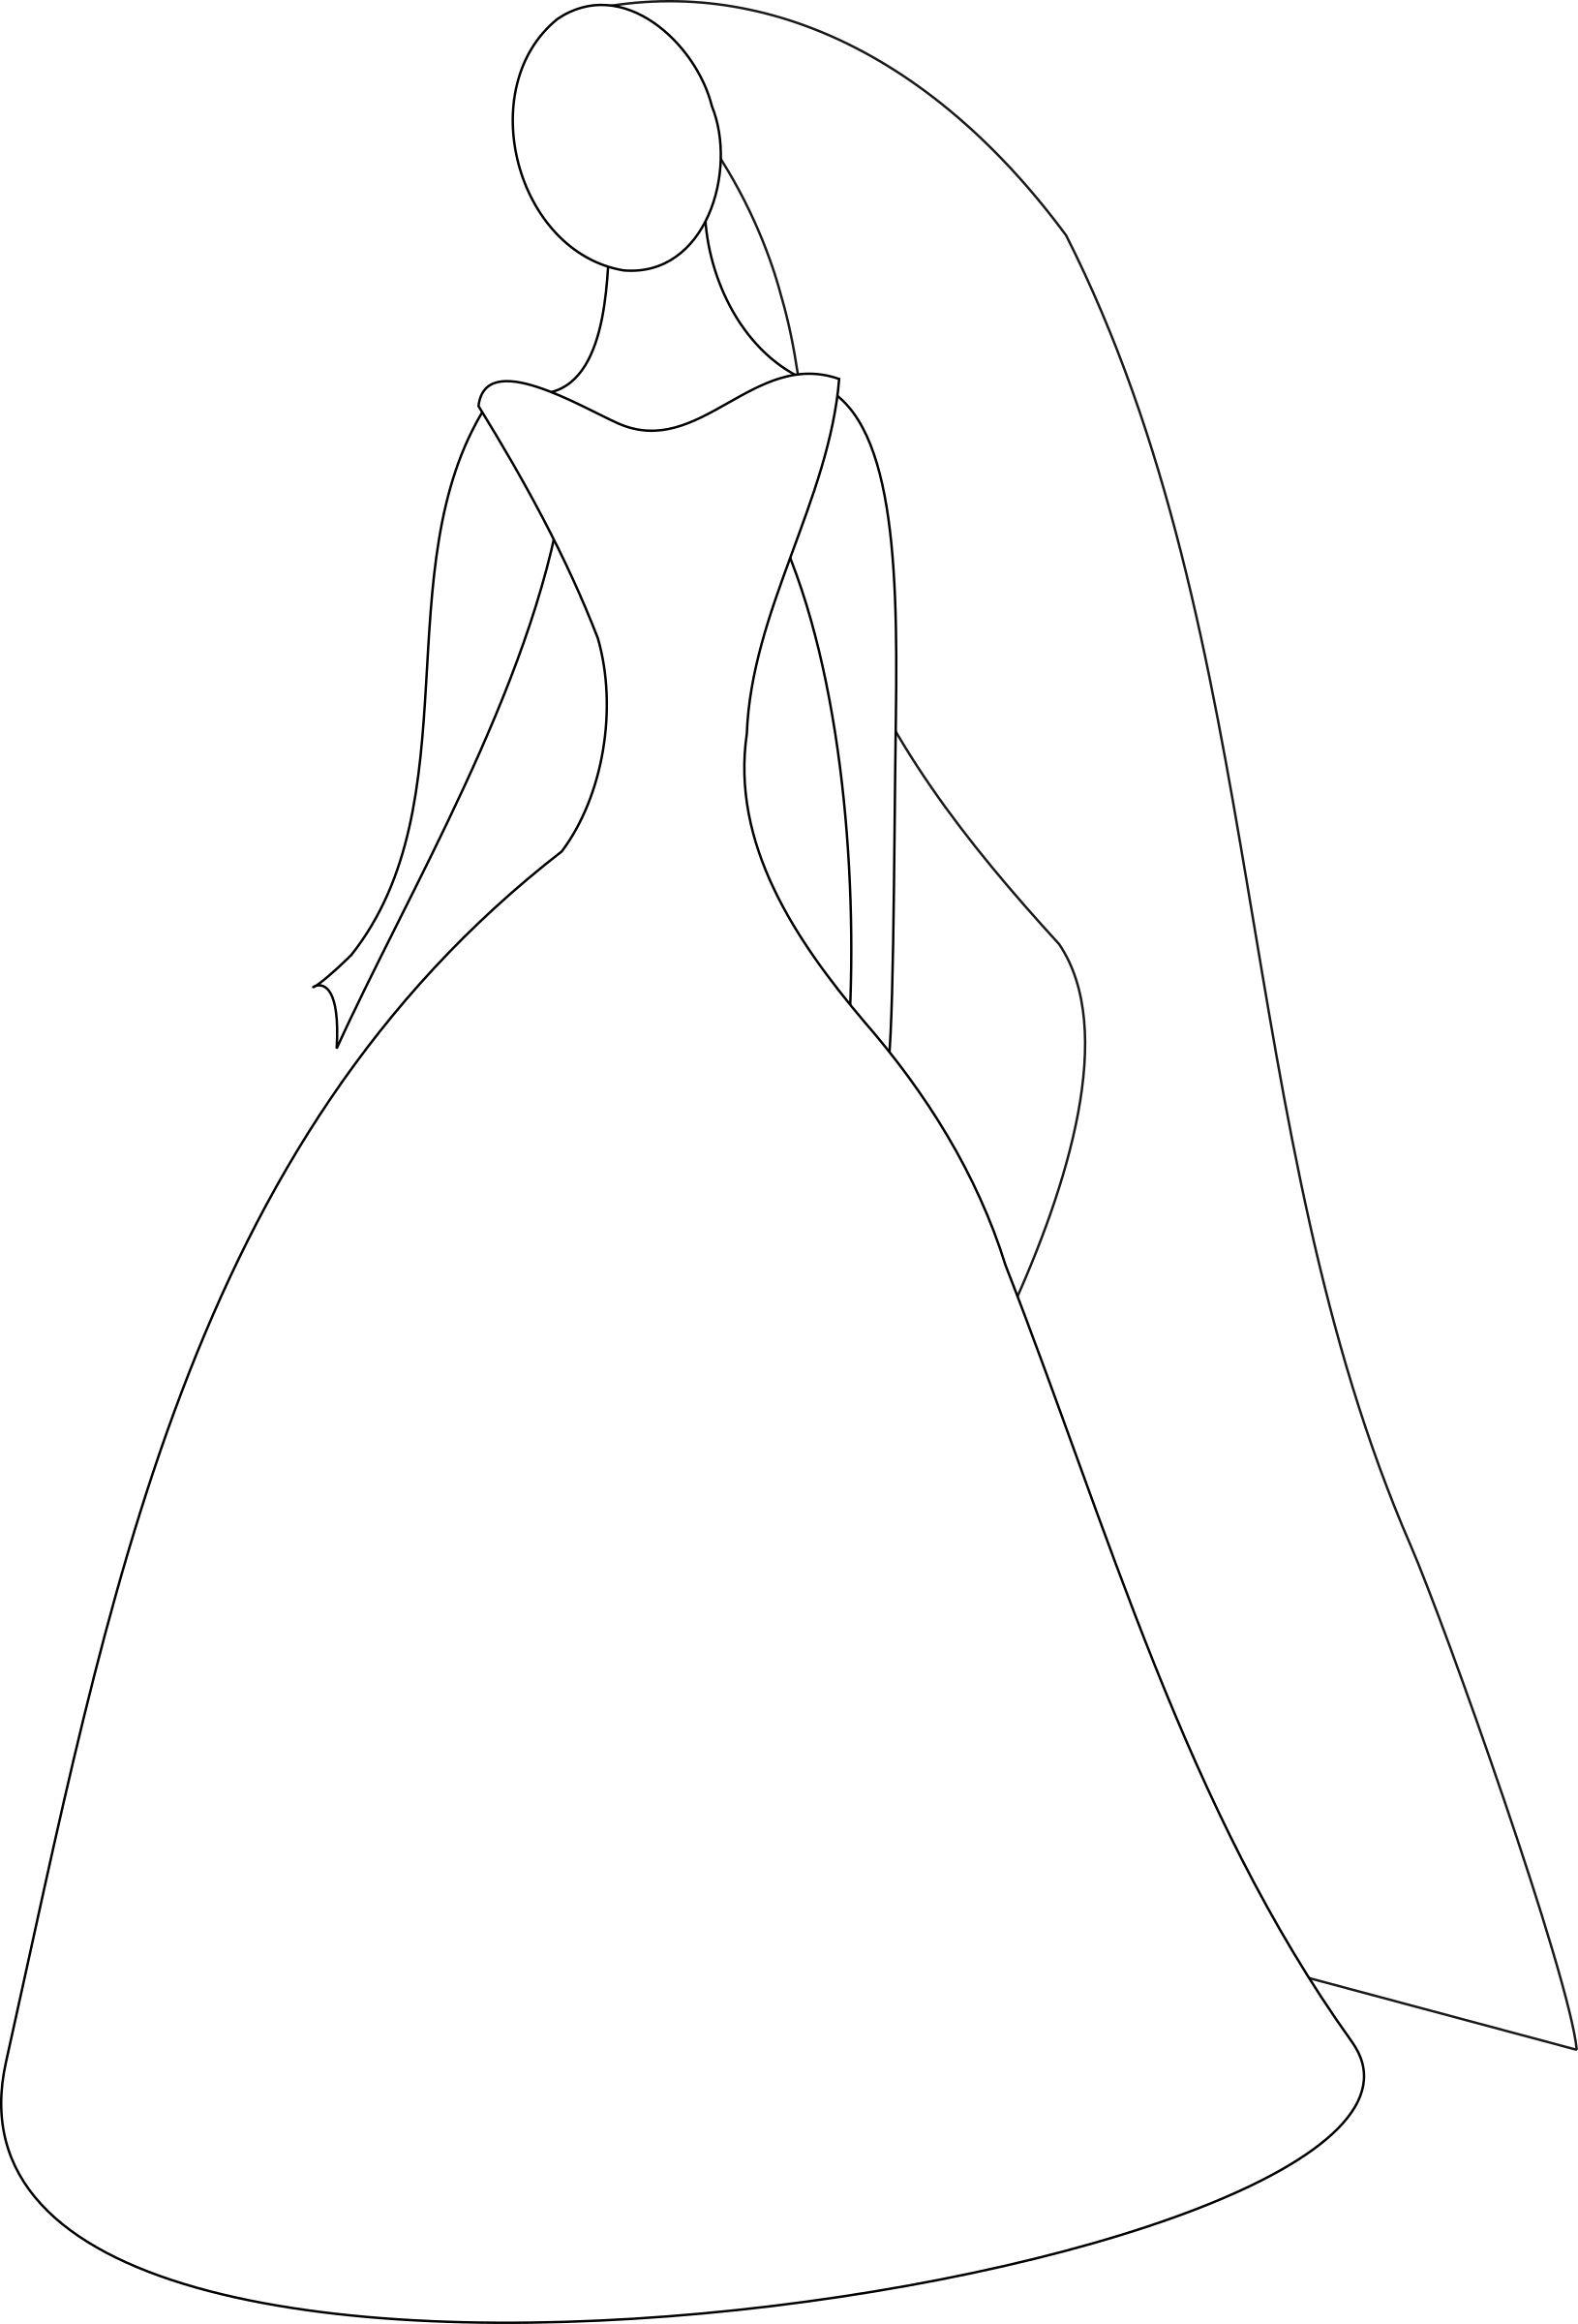 Dress clipart animated. What is a silhouette